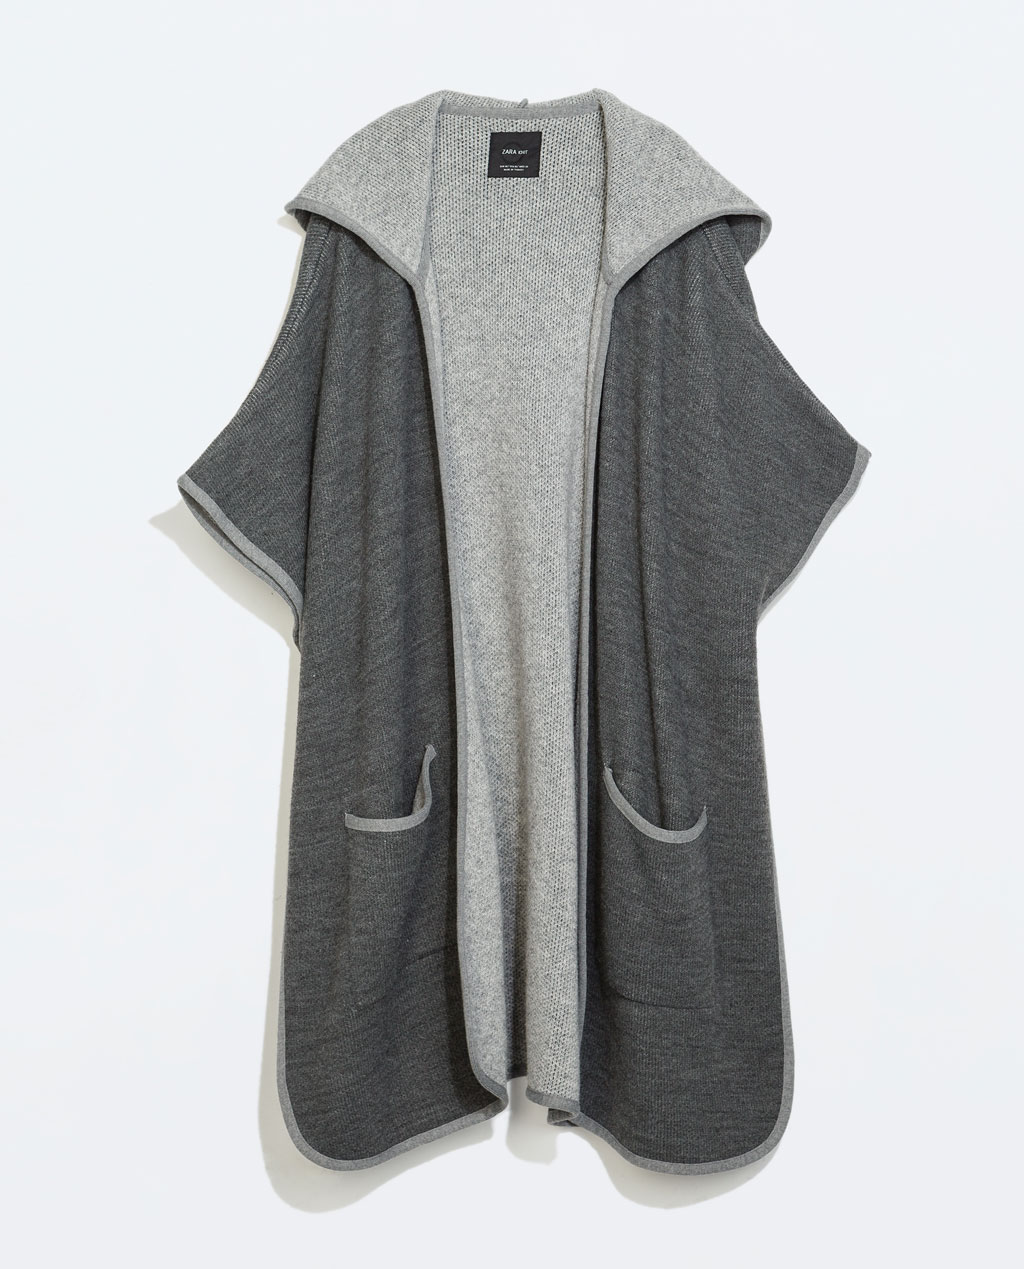 http://www.zara.com/uk/en/woman/knitwear/cardigans/hooded-cape-with-piping-c498027p2252501.html